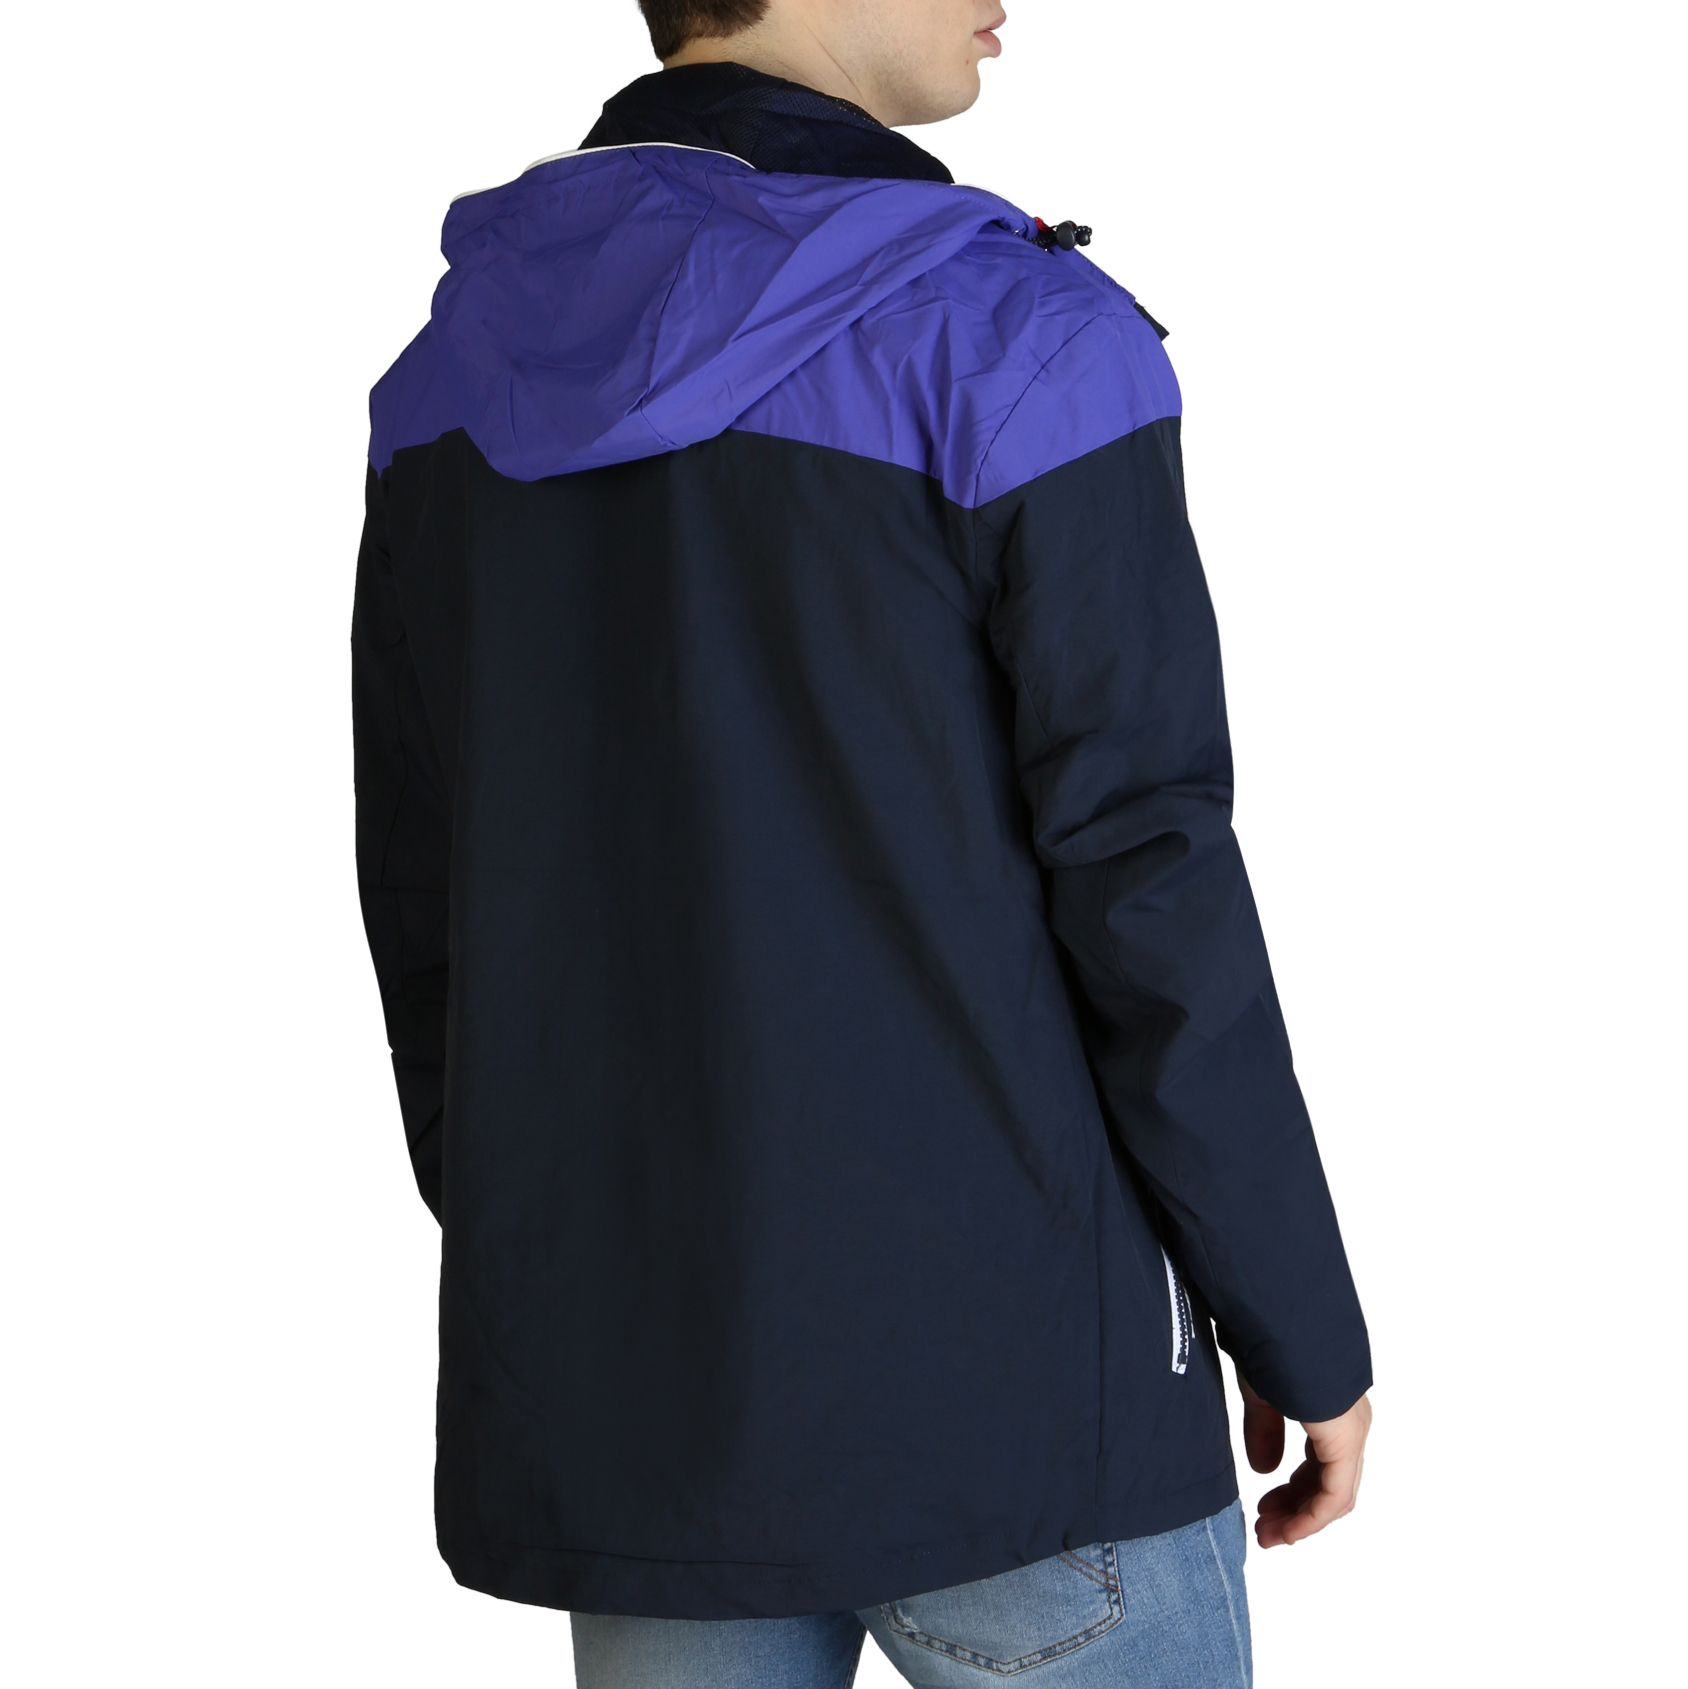 Geographical Norway – Afond_man